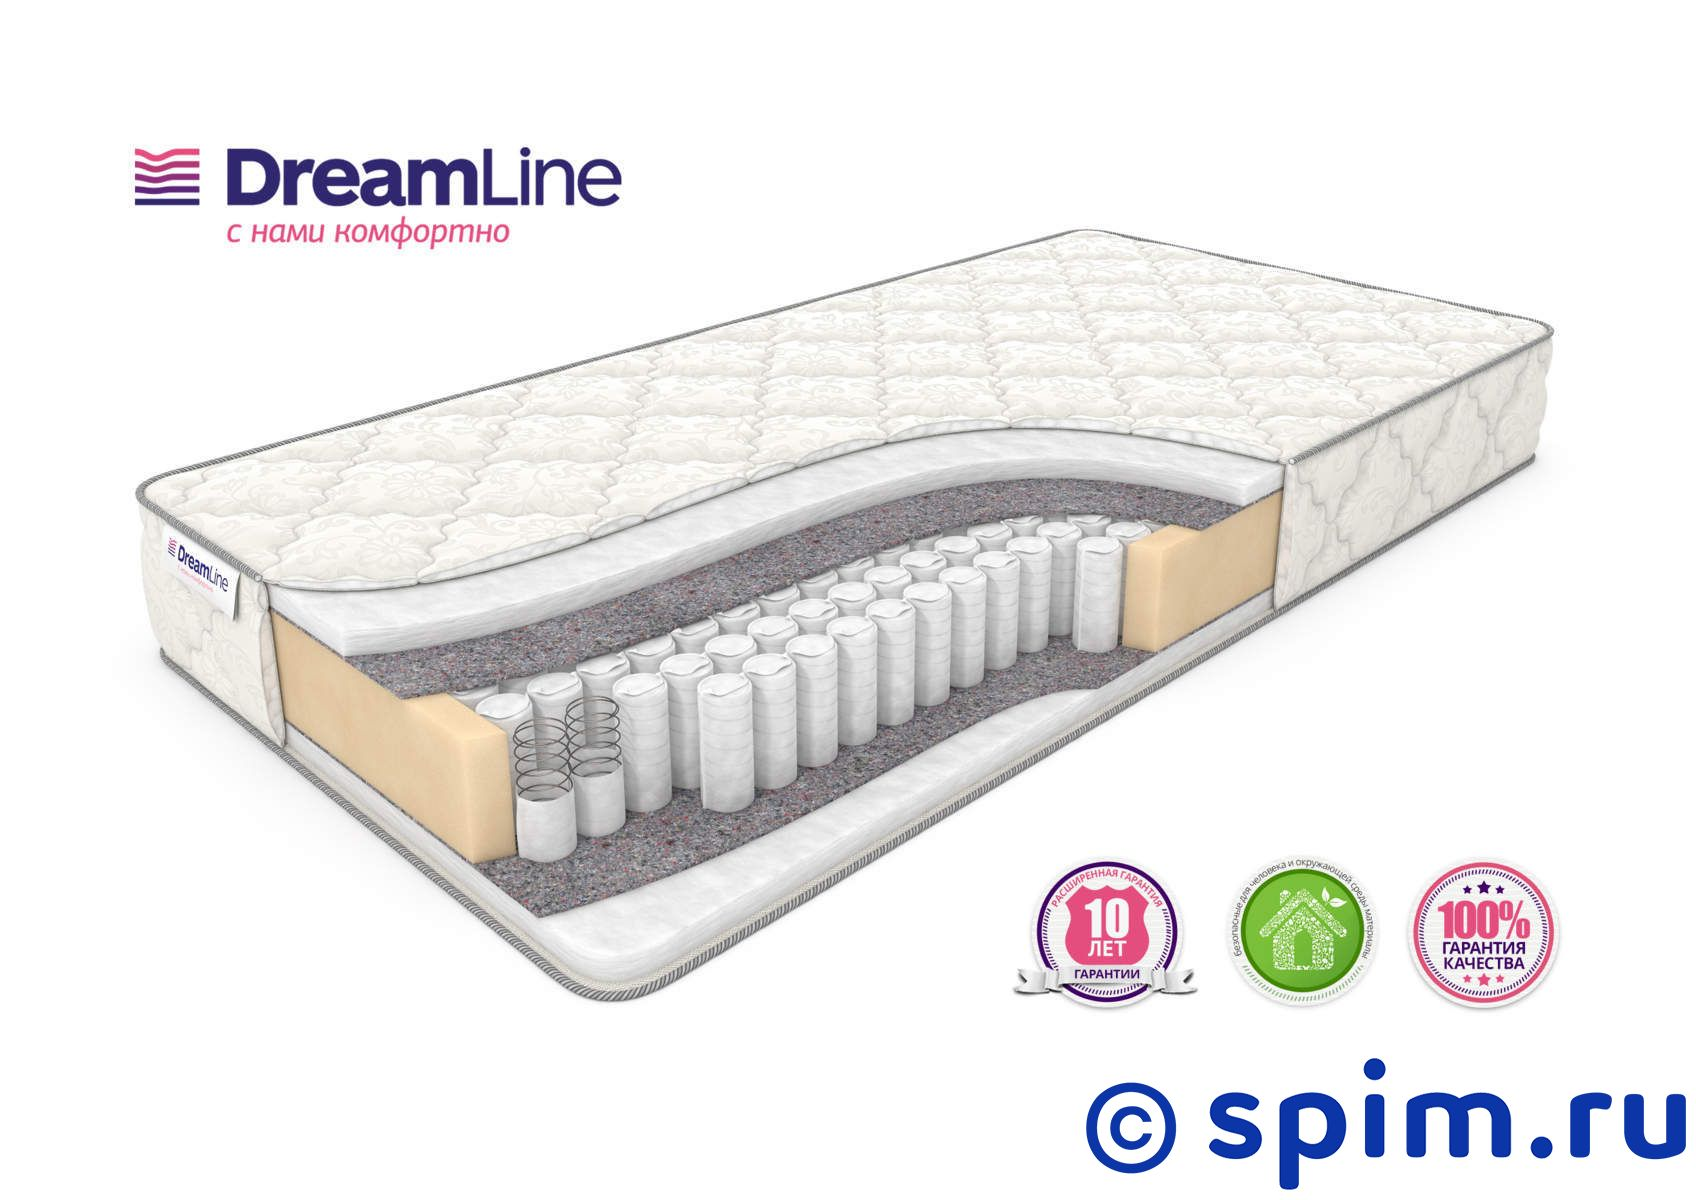 Матрас DreamLine Eco Hol Tfk 150х195 см матрас dreamline sleepdream medium tfk 140х200 см